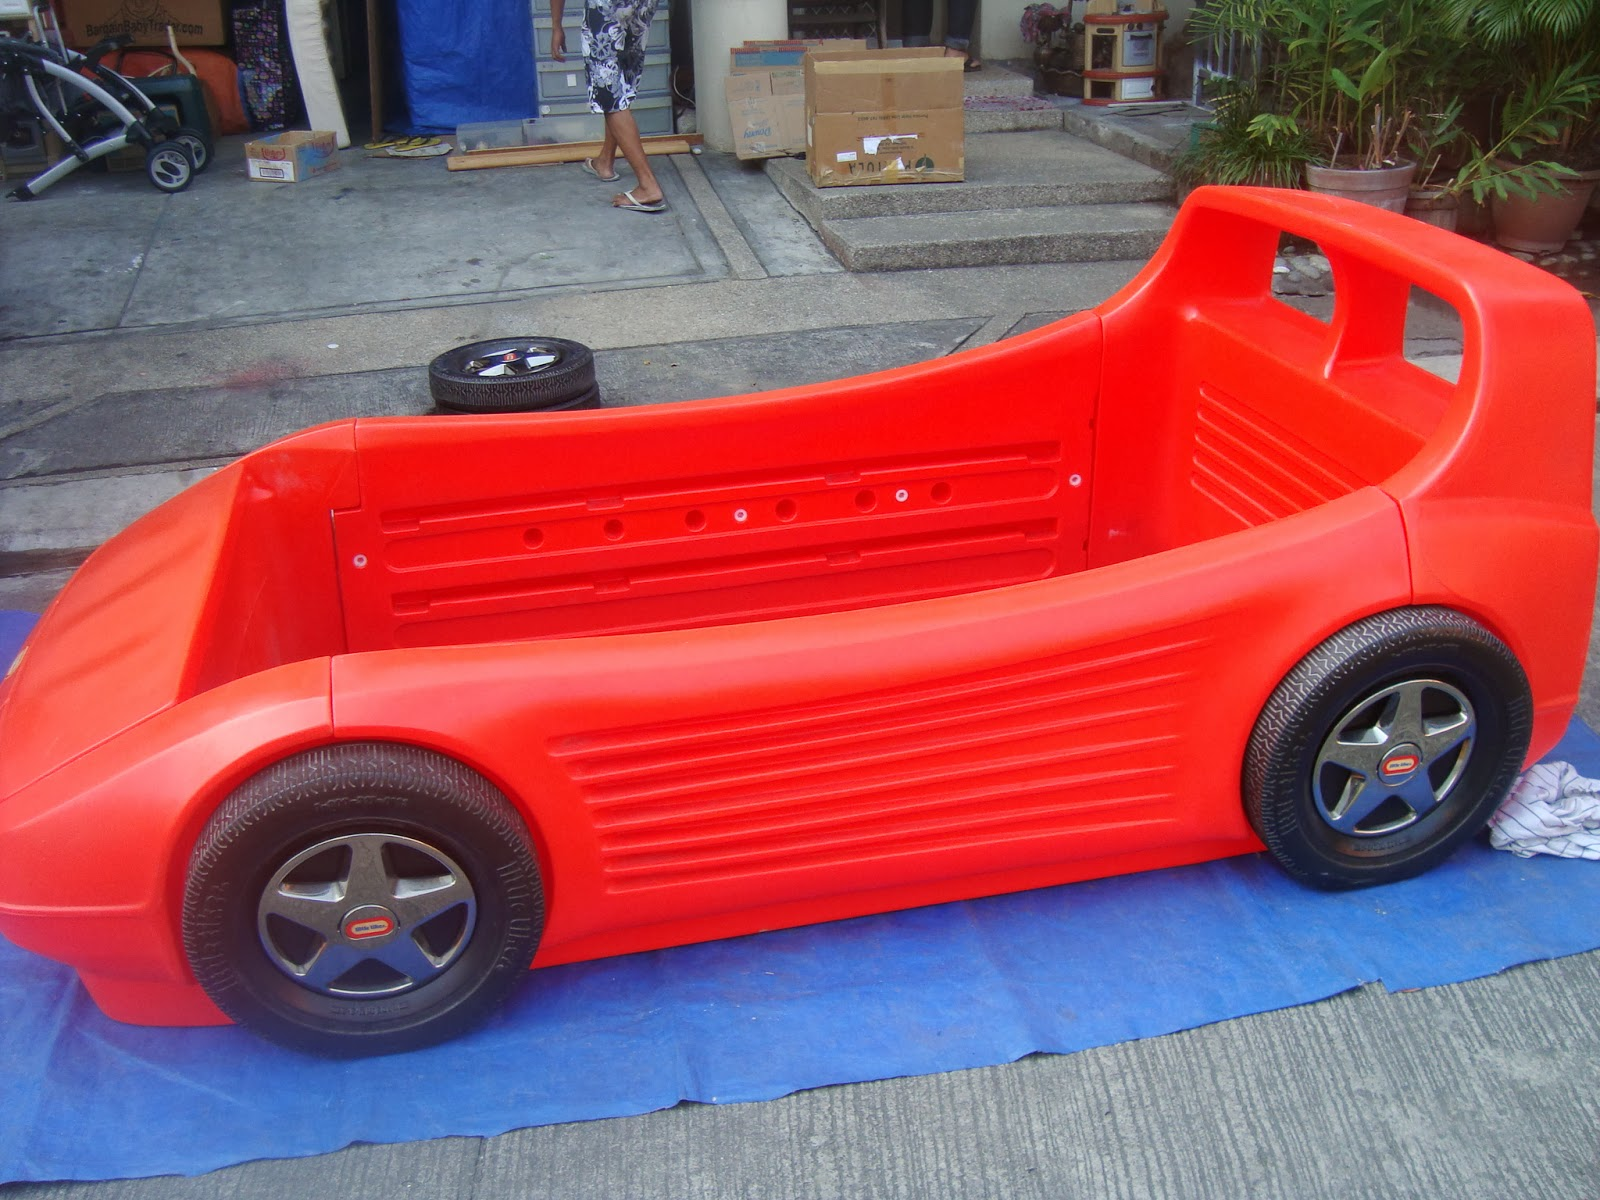 SM RETAILS 48 000P IM JUST SELLING USED BY MY SON FOR SALE NA HEHHEH ITS. Little Tikes Red Race Car Bed Twin Size